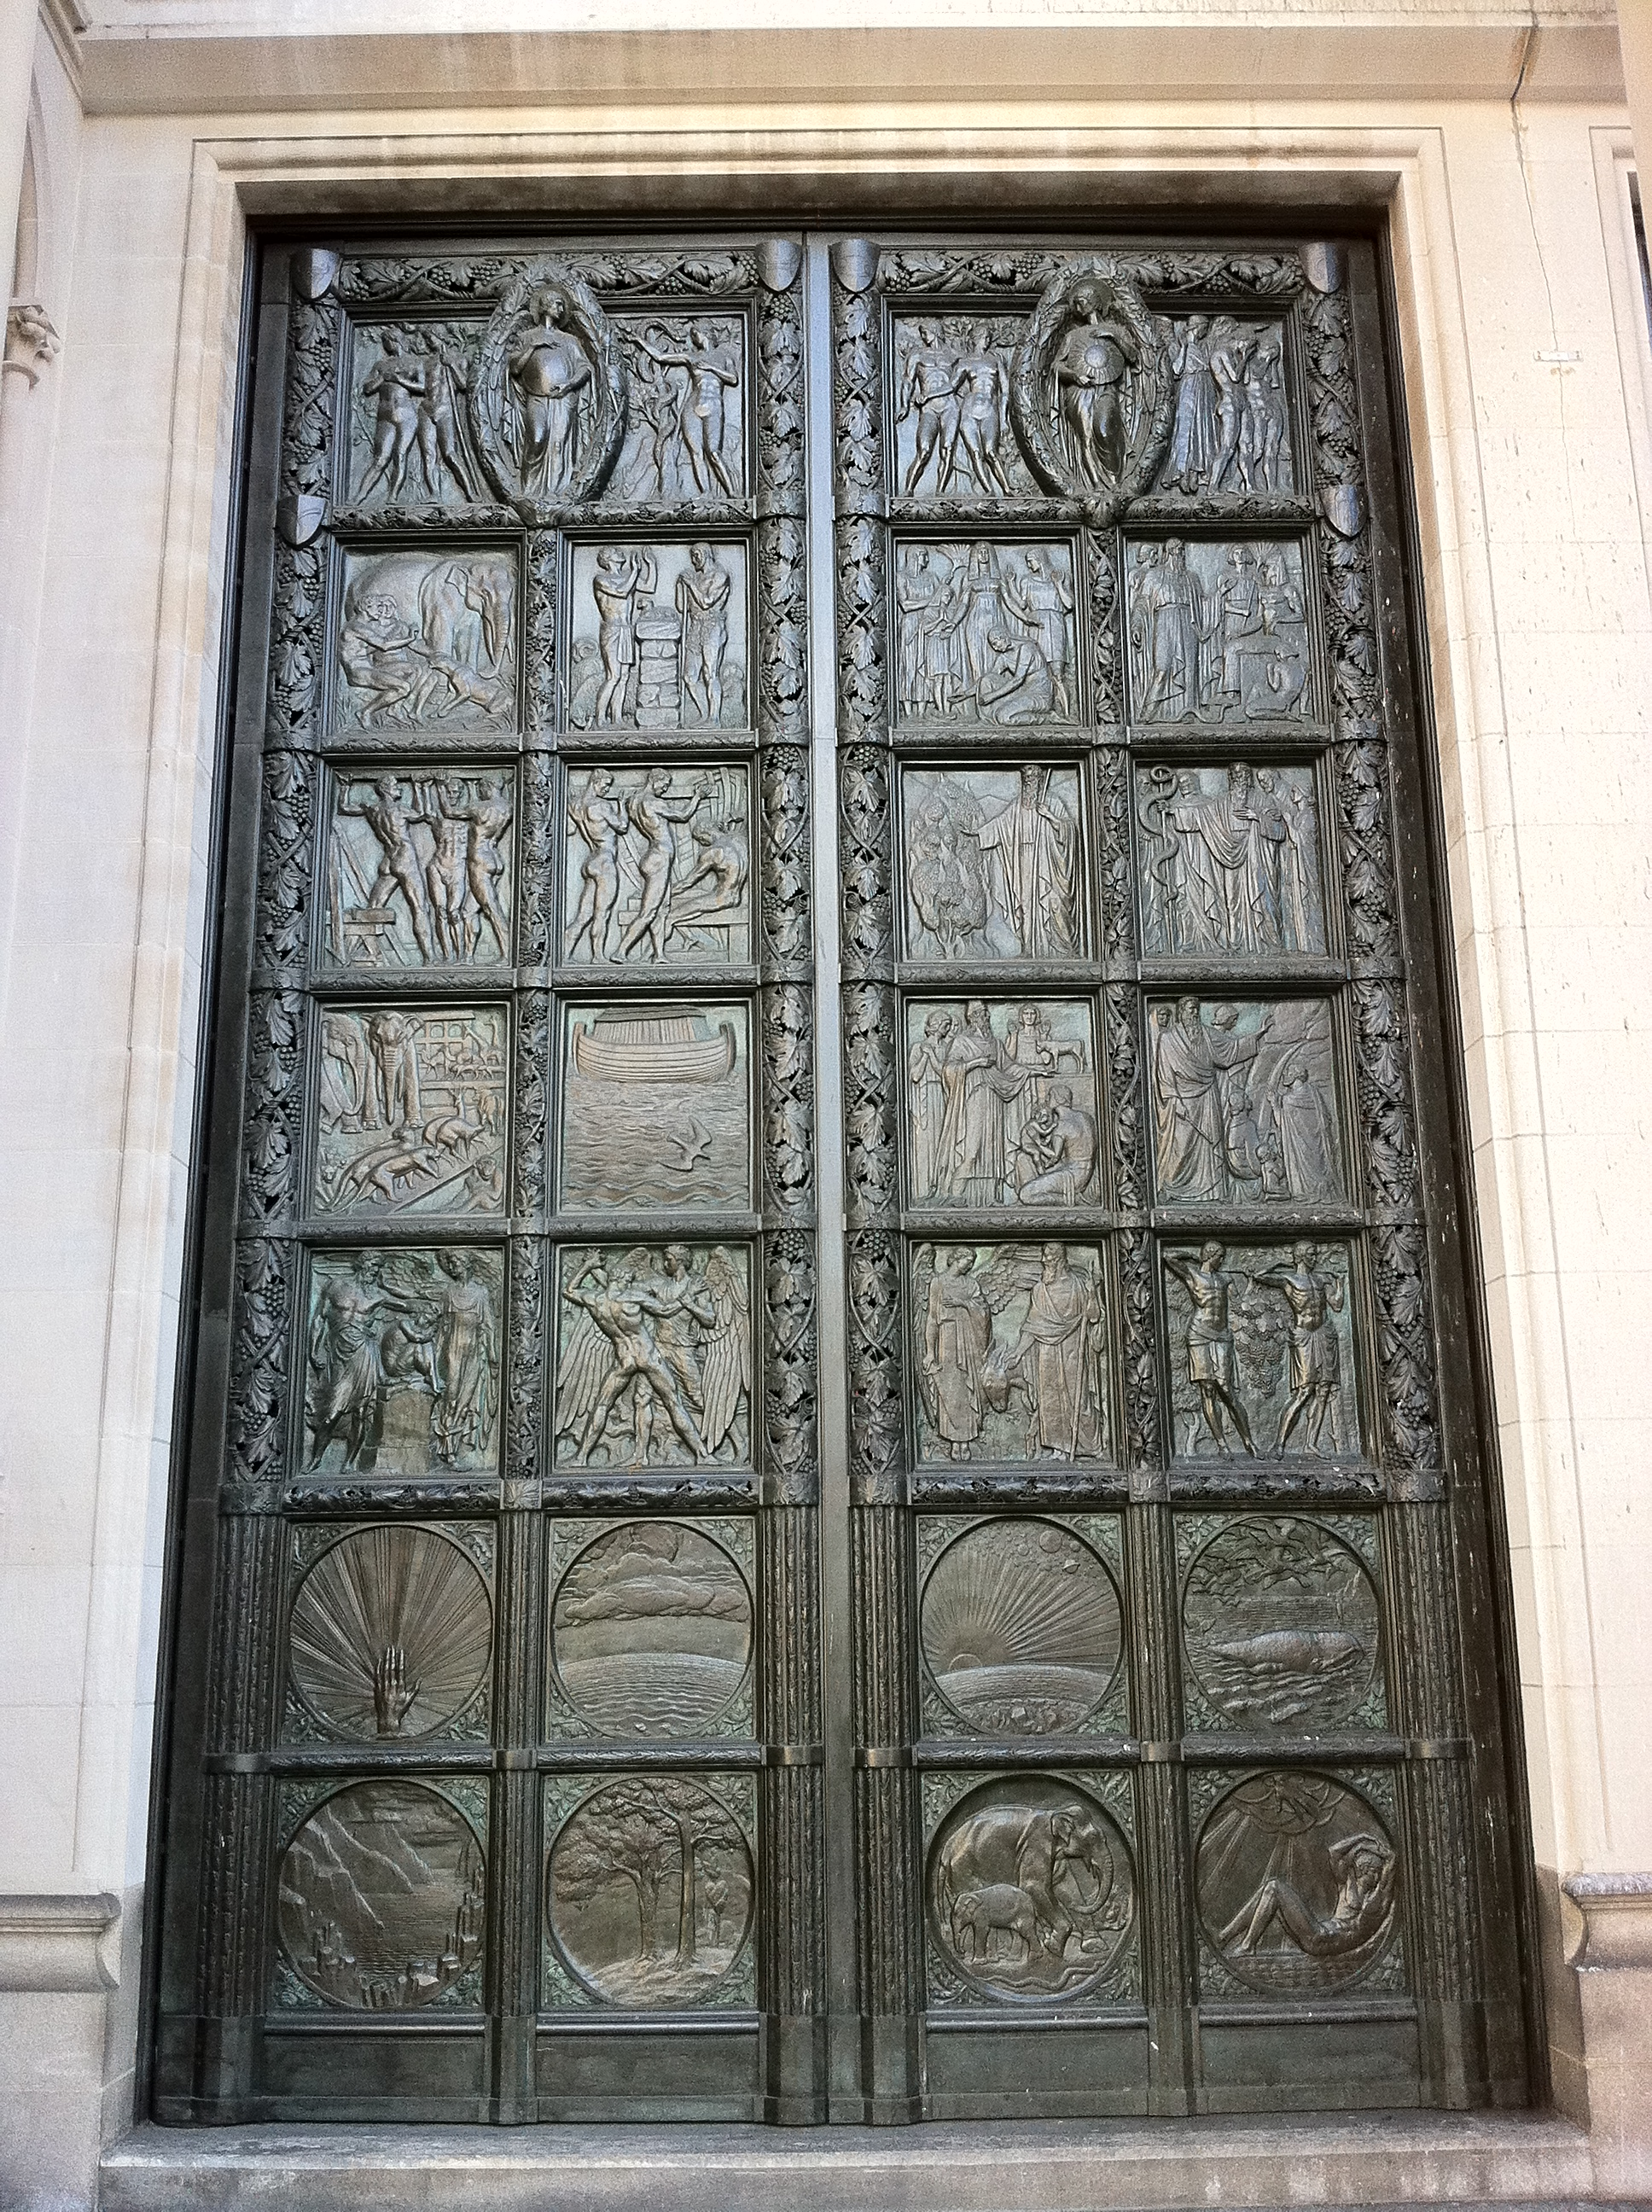 http://upload.wikimedia.org/wikipedia/commons/6/65/Left_hand_bronze_door_at_the_Cathedral_of_St_John_the_Divine%2C_New_York.jpg